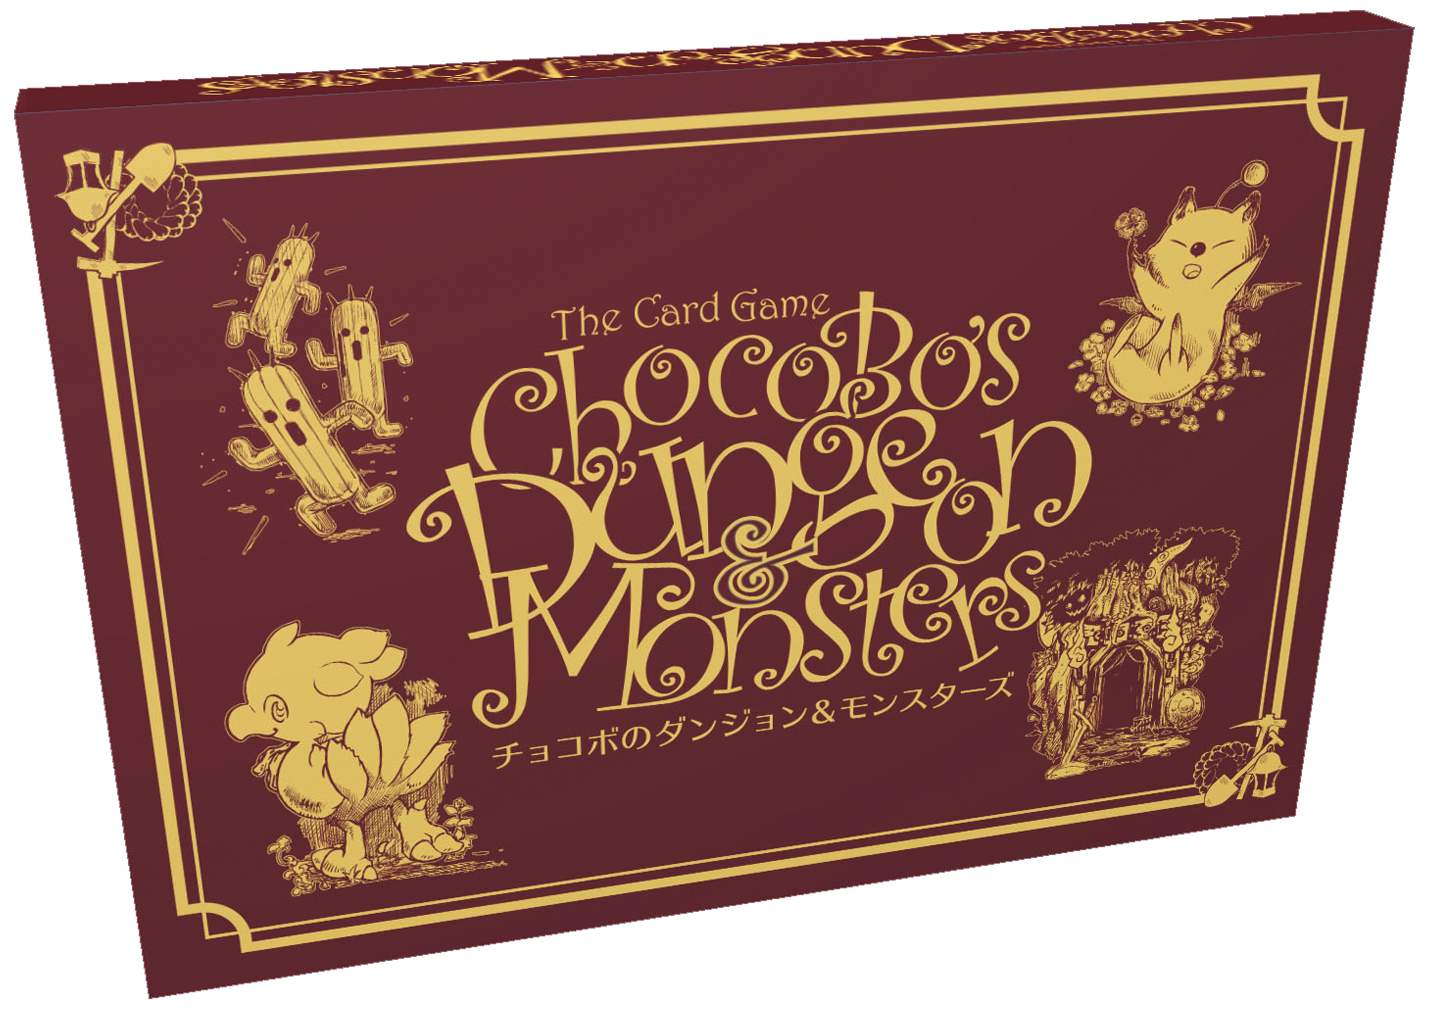 Chocobos Crystal Hunt: Dungeon And Monsters Expansion Pack Box Front